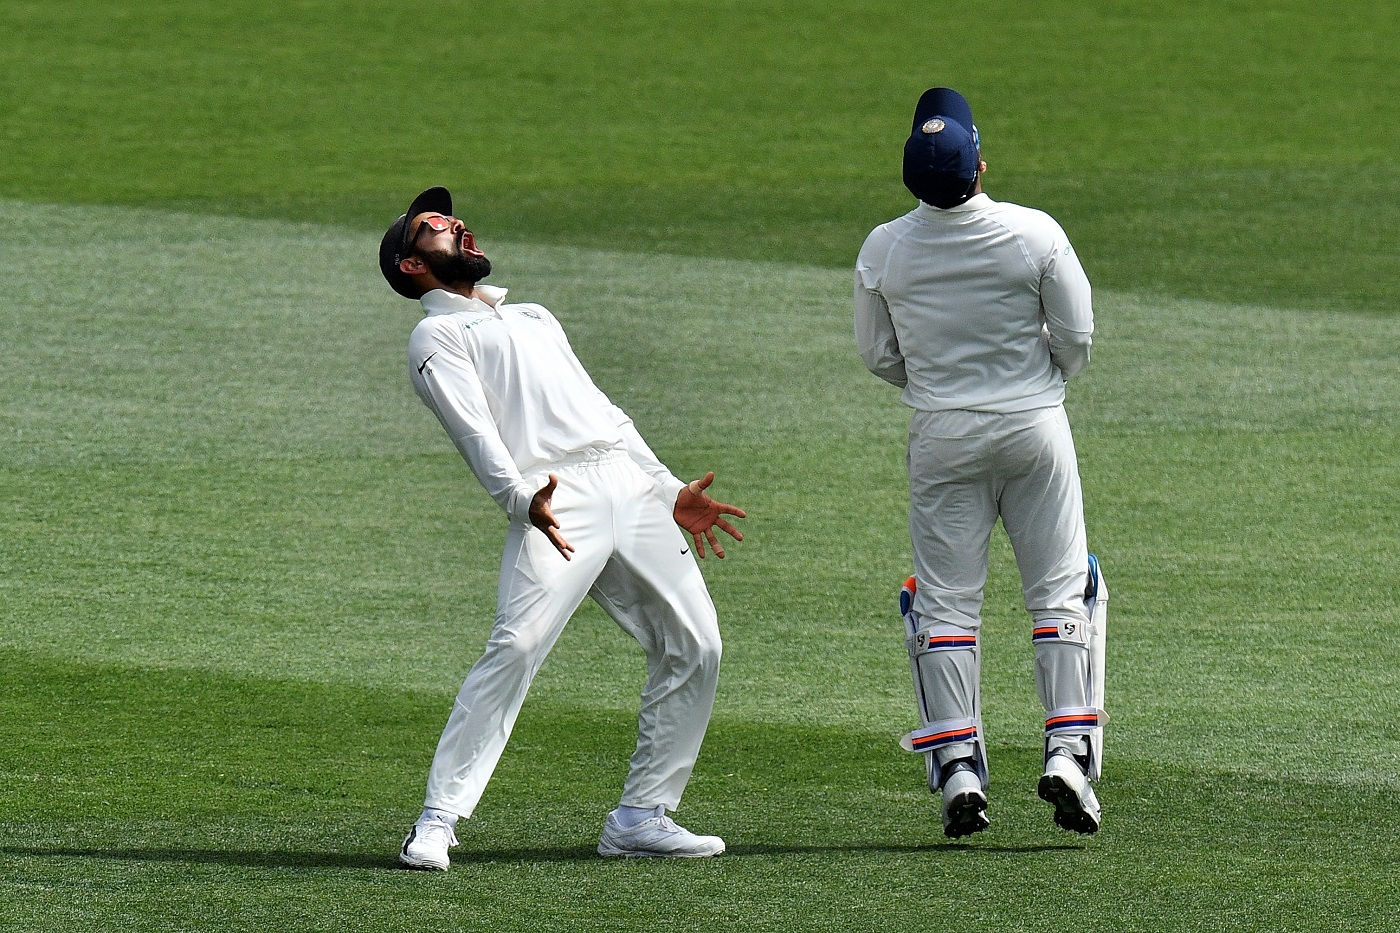 Watch: Furious Virat Kohli Abuses As Hanuma Vihari Does Not Go For Tough Catch 2